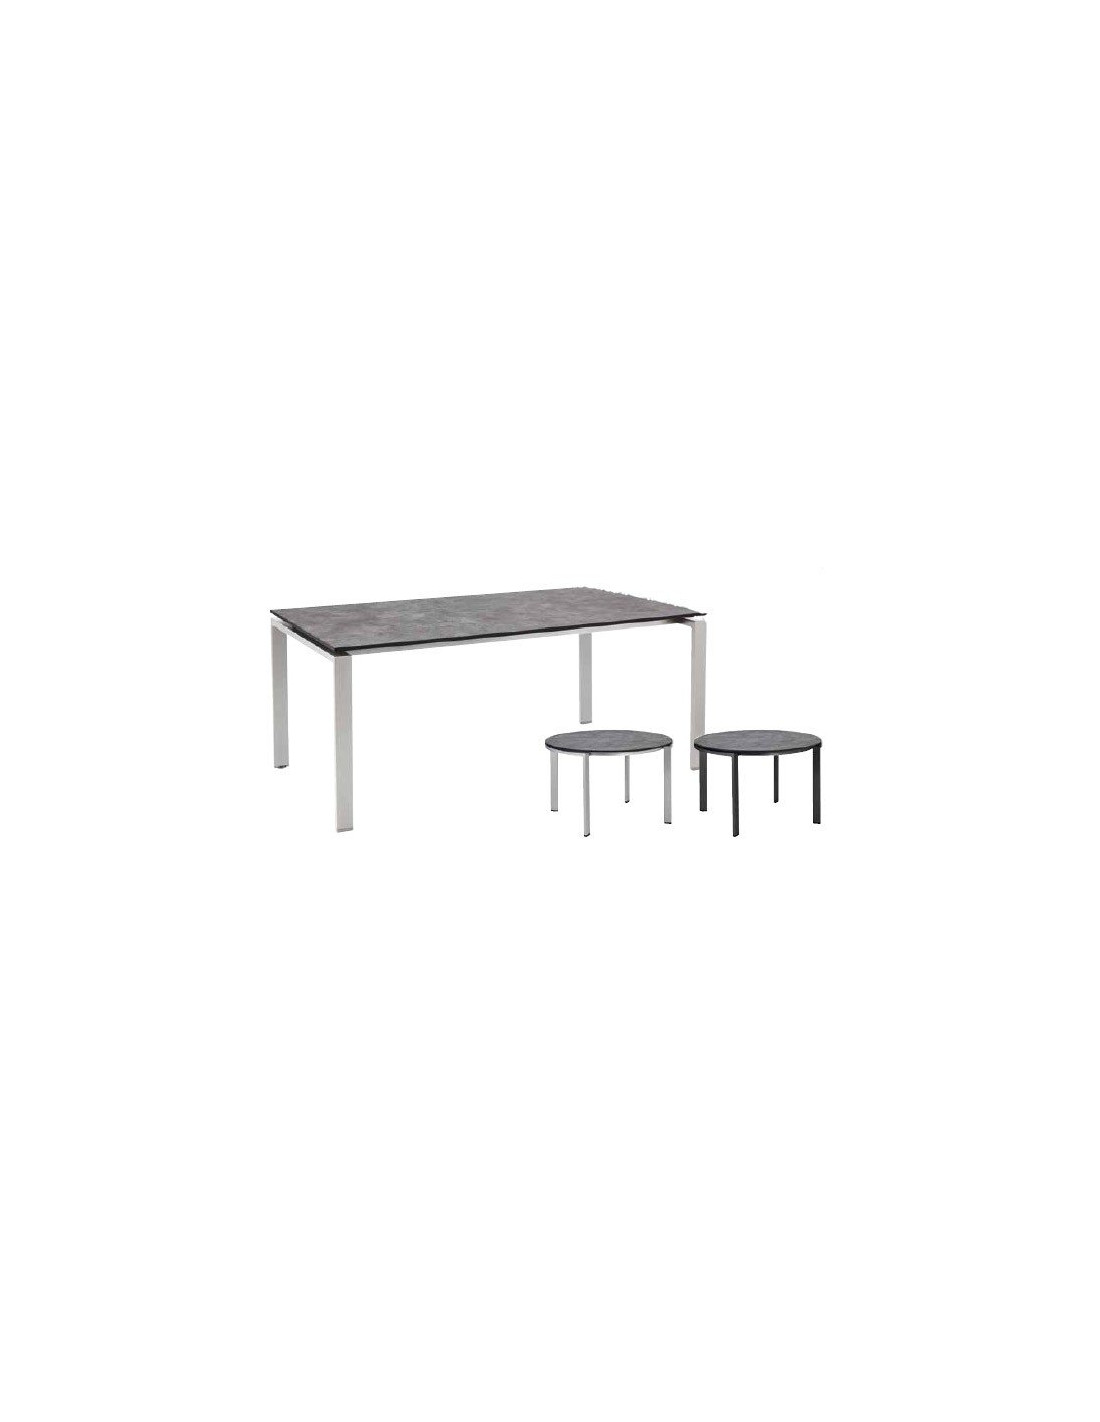 Table de jardin en beton bross de kettler for Table exterieur kettler